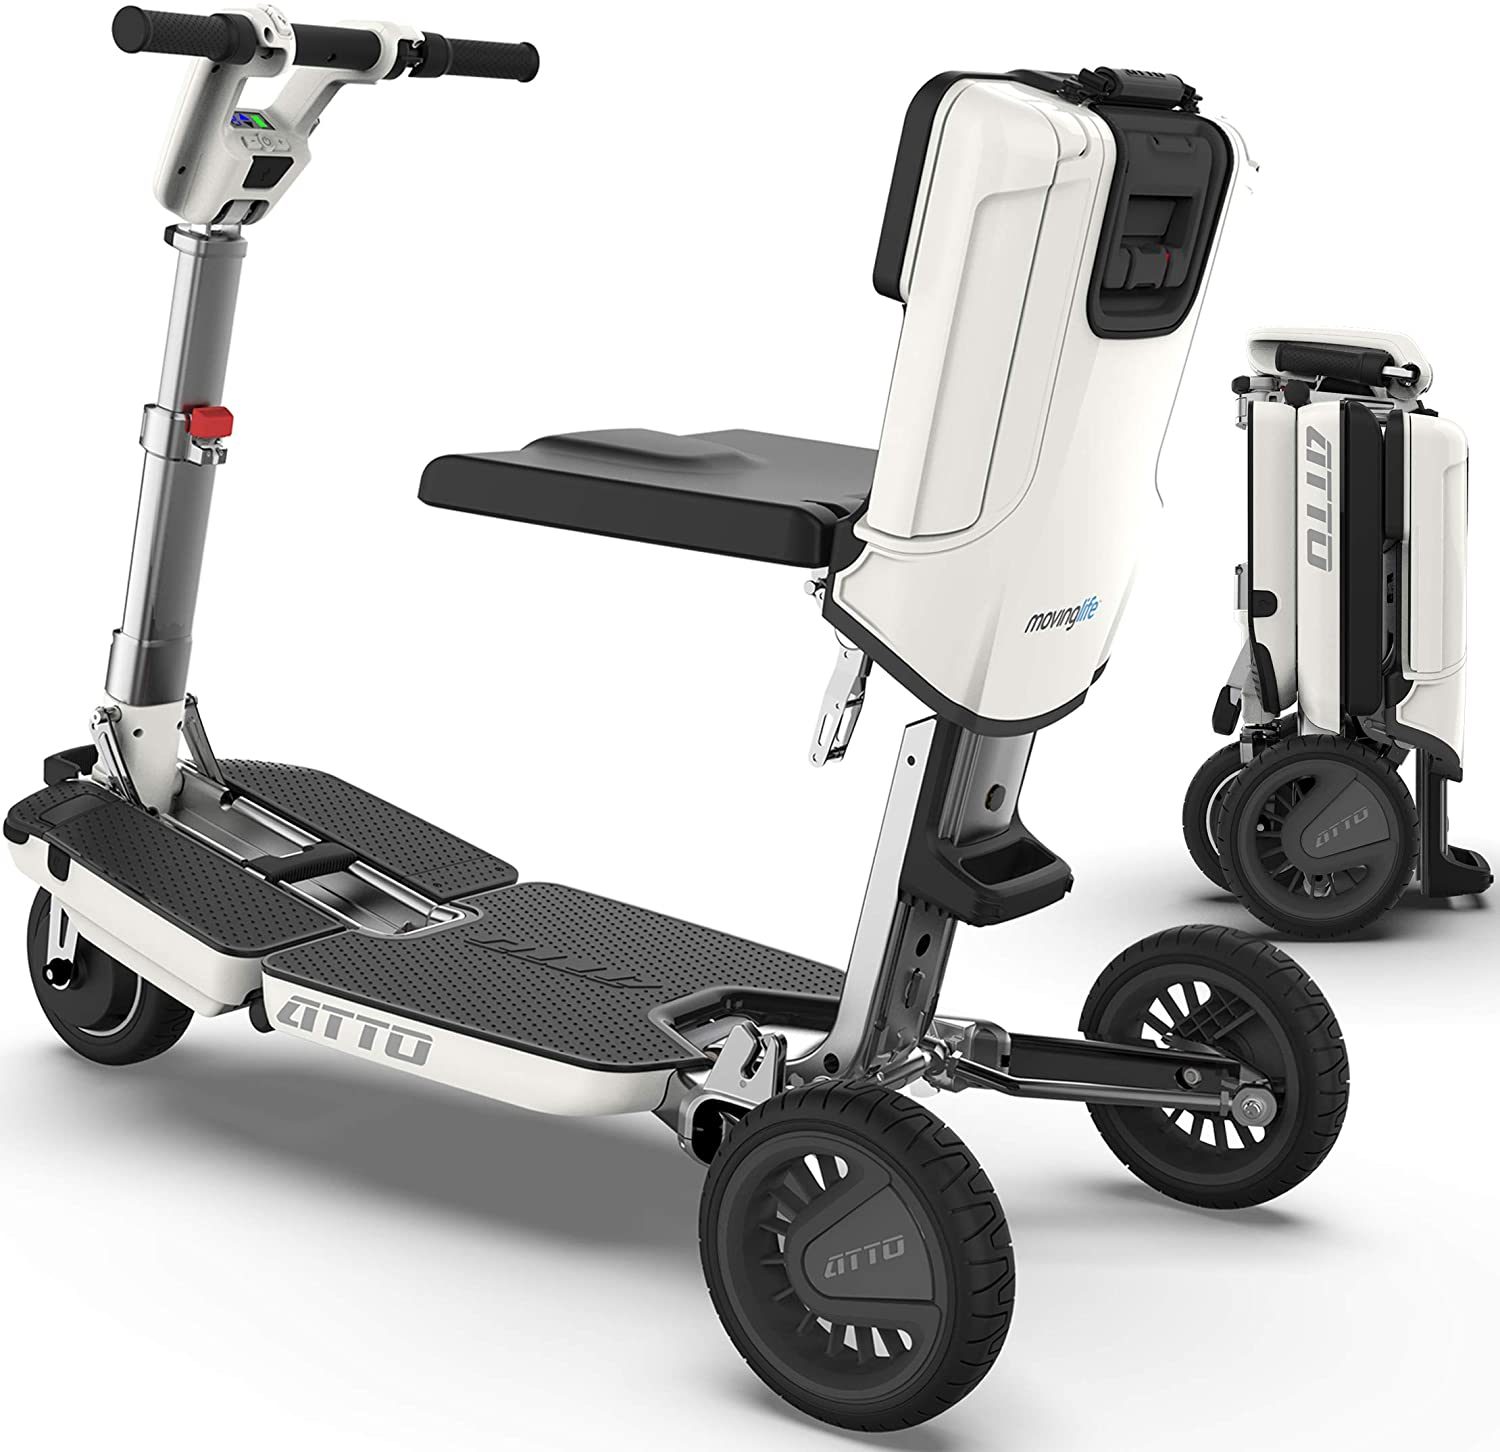 Moving Life ATTO Three-Wheel Mobility Scooter